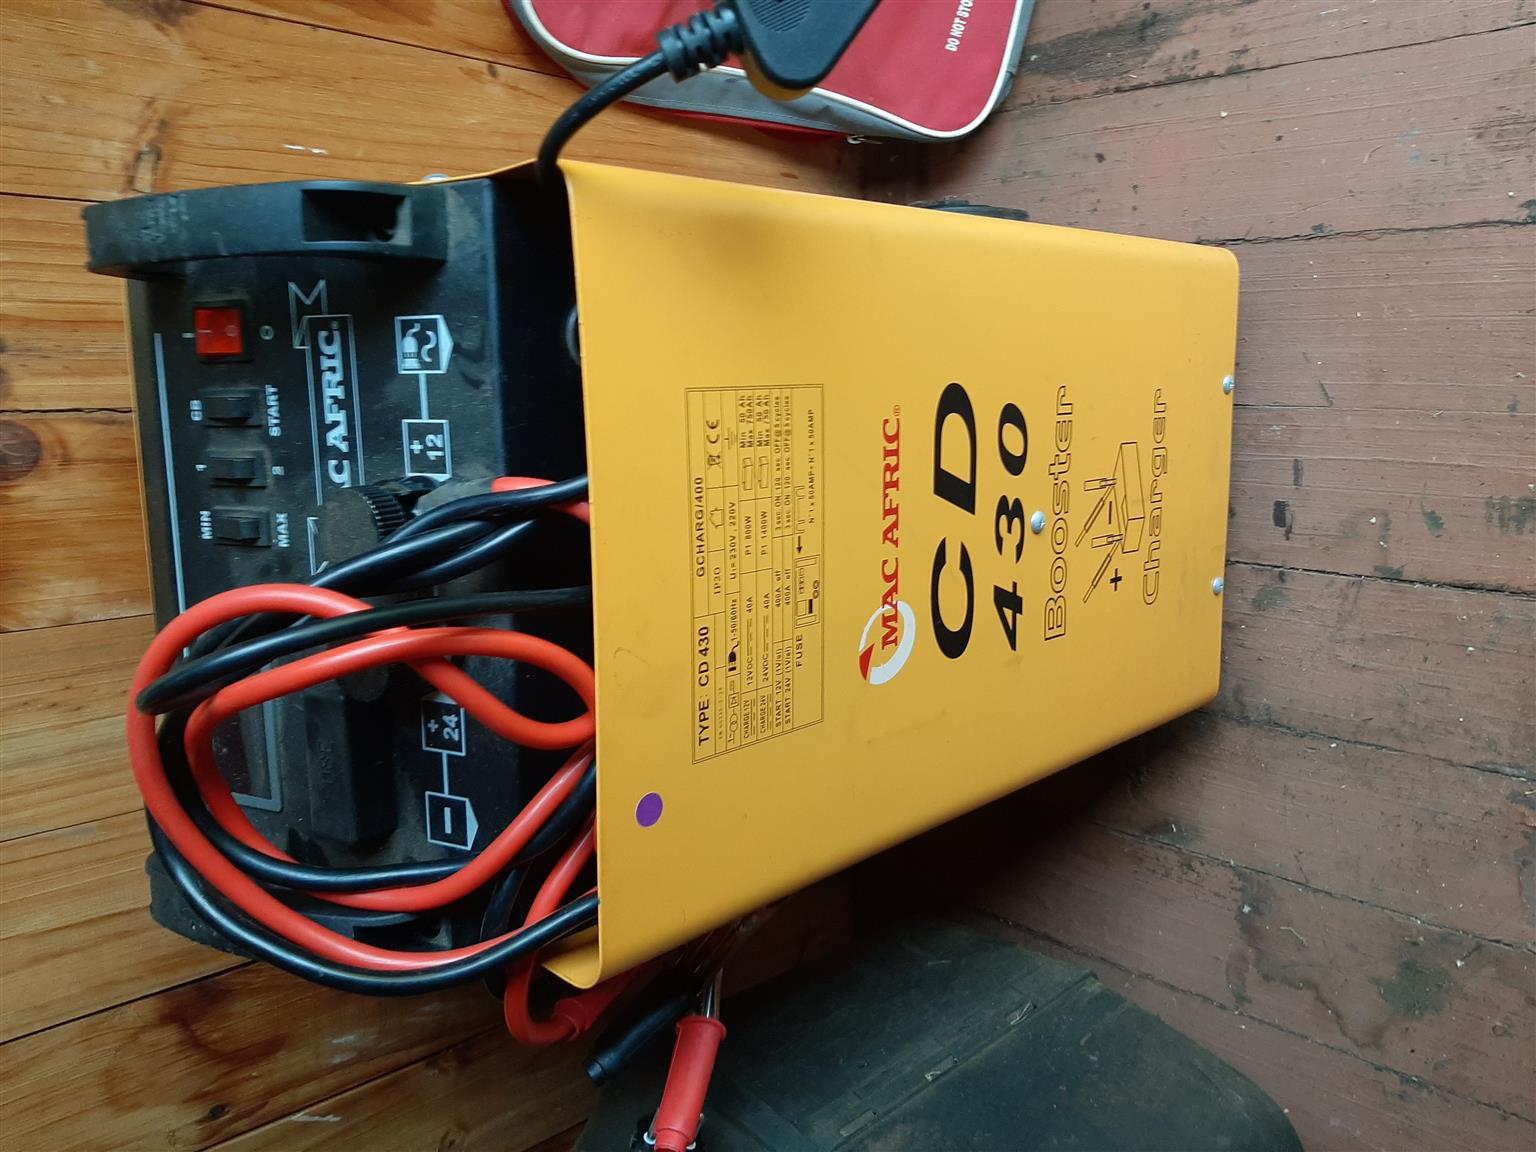 Battery charger and Booster CD 430 MacAfrica